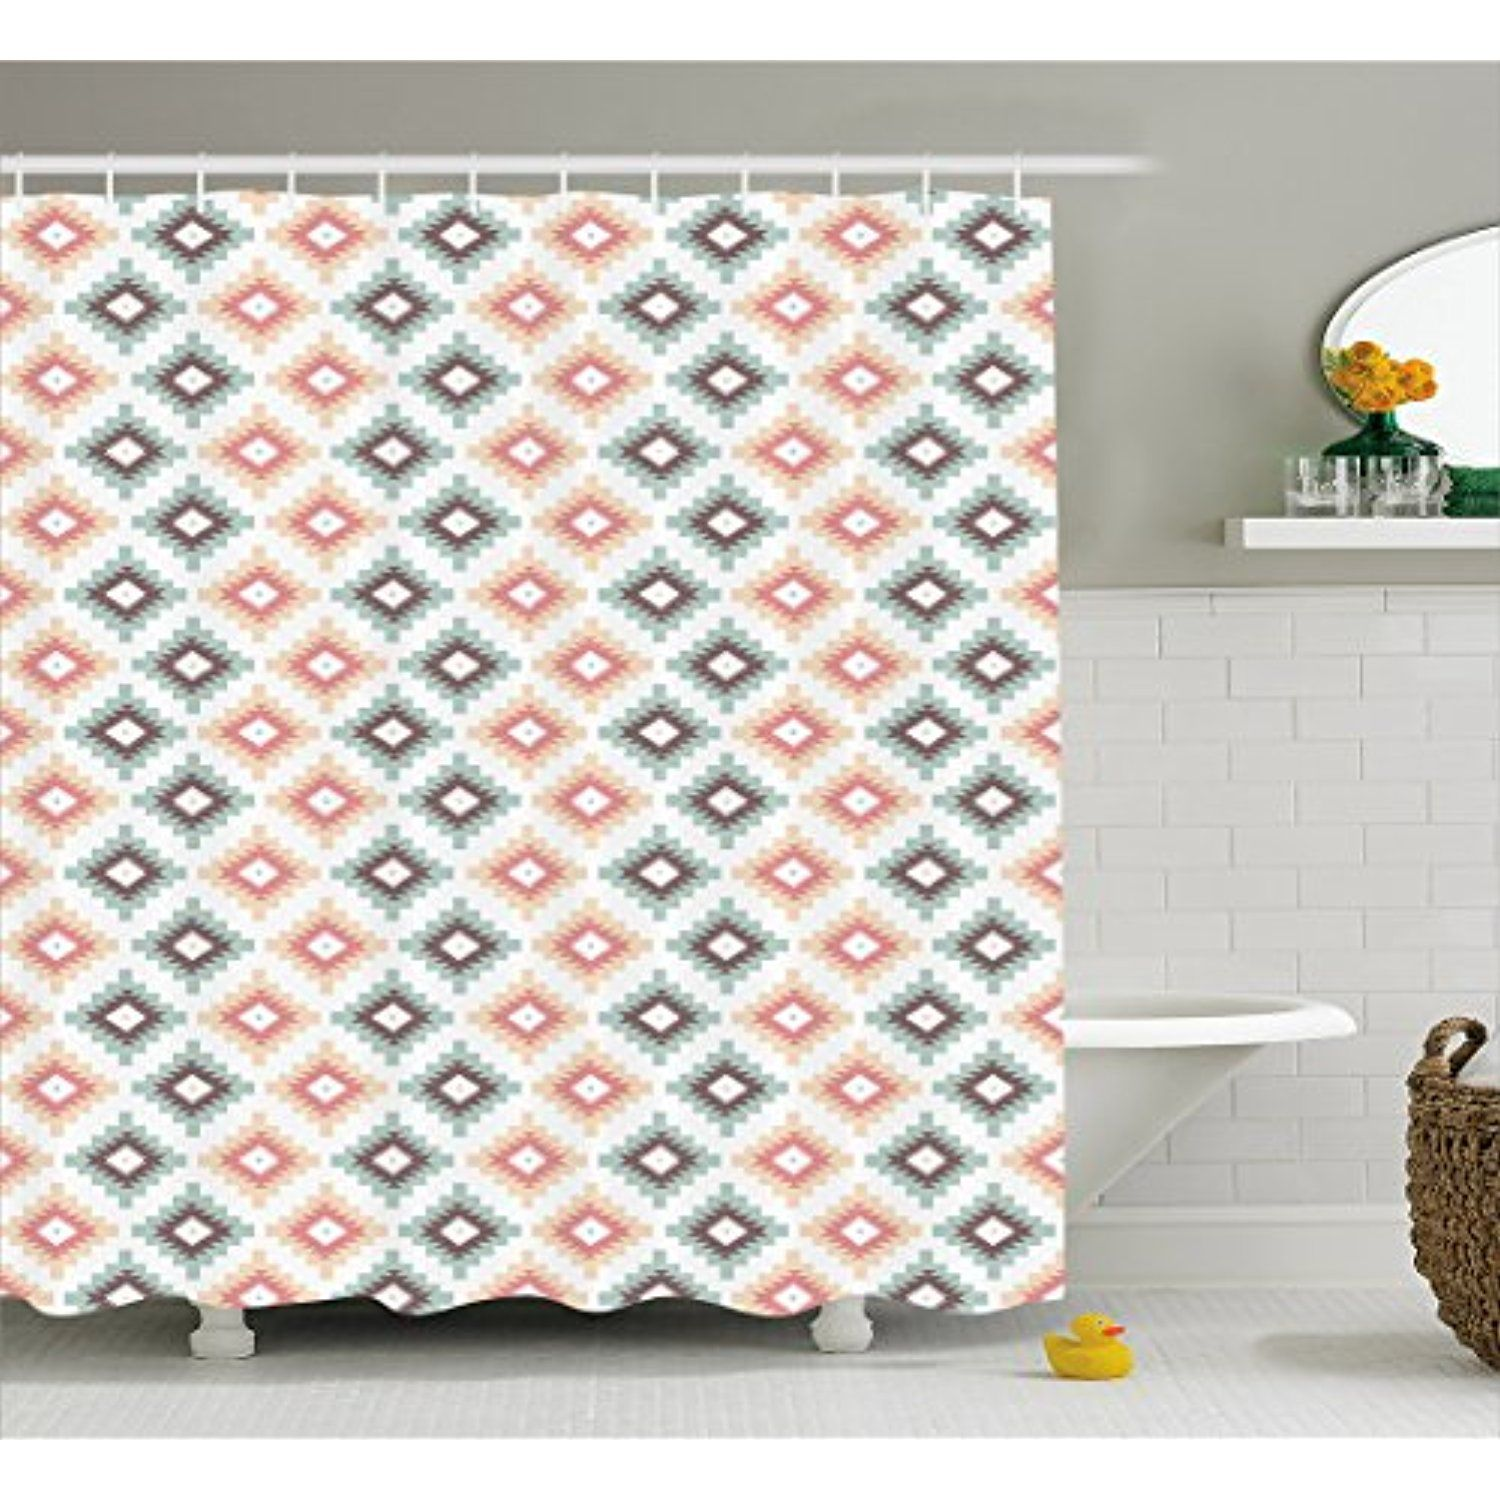 Aztec Shower Curtain By Lunarable Latin Culture Inspired Abstract